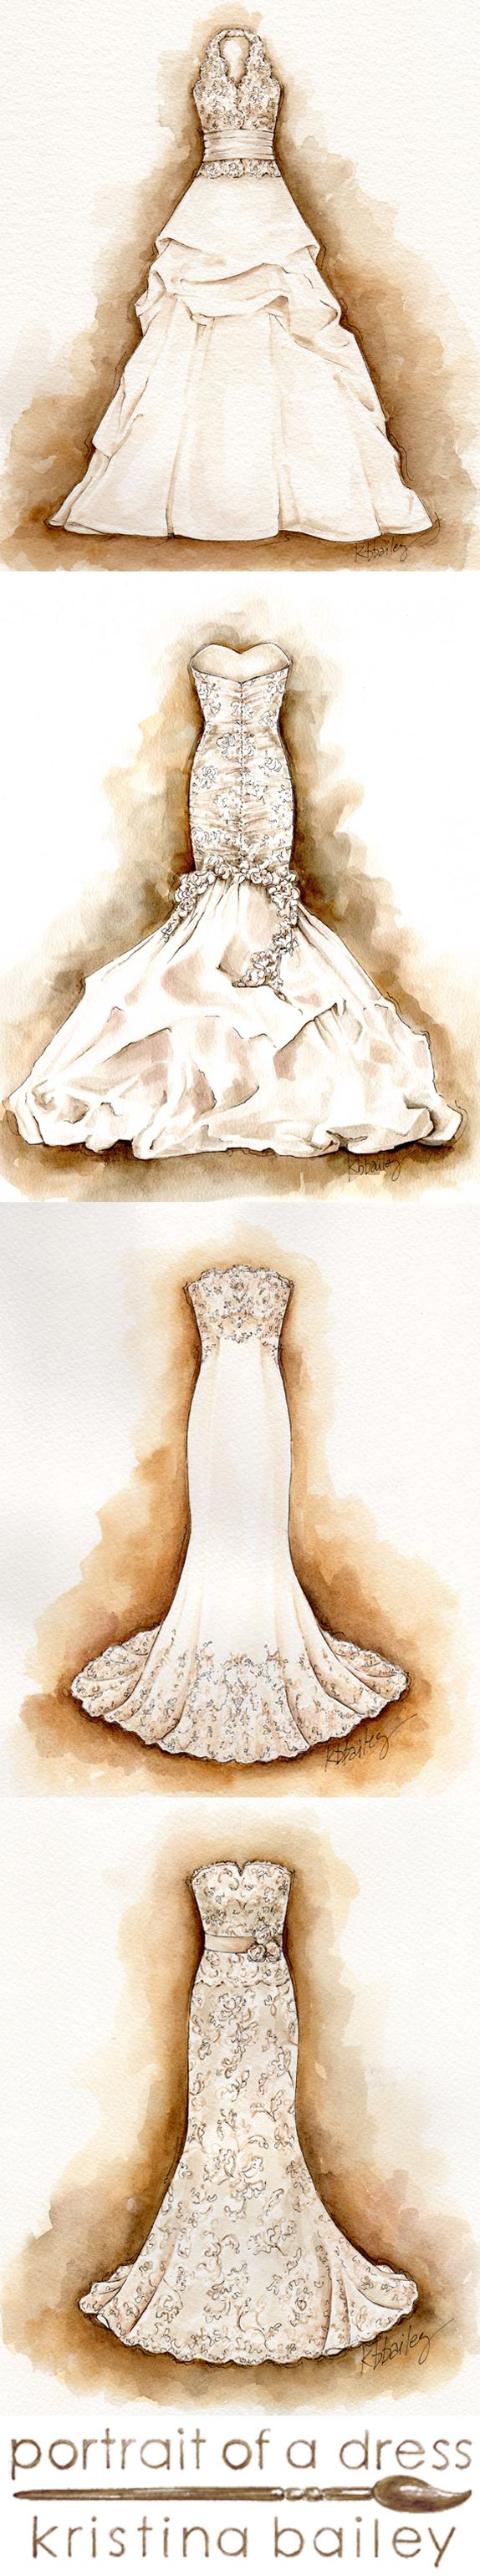 Custom Watercolor Wedding Dress Portraits by Kristina Bailey. Great #wedding #gift or #firstanniversary gift www.portraitofadress.com